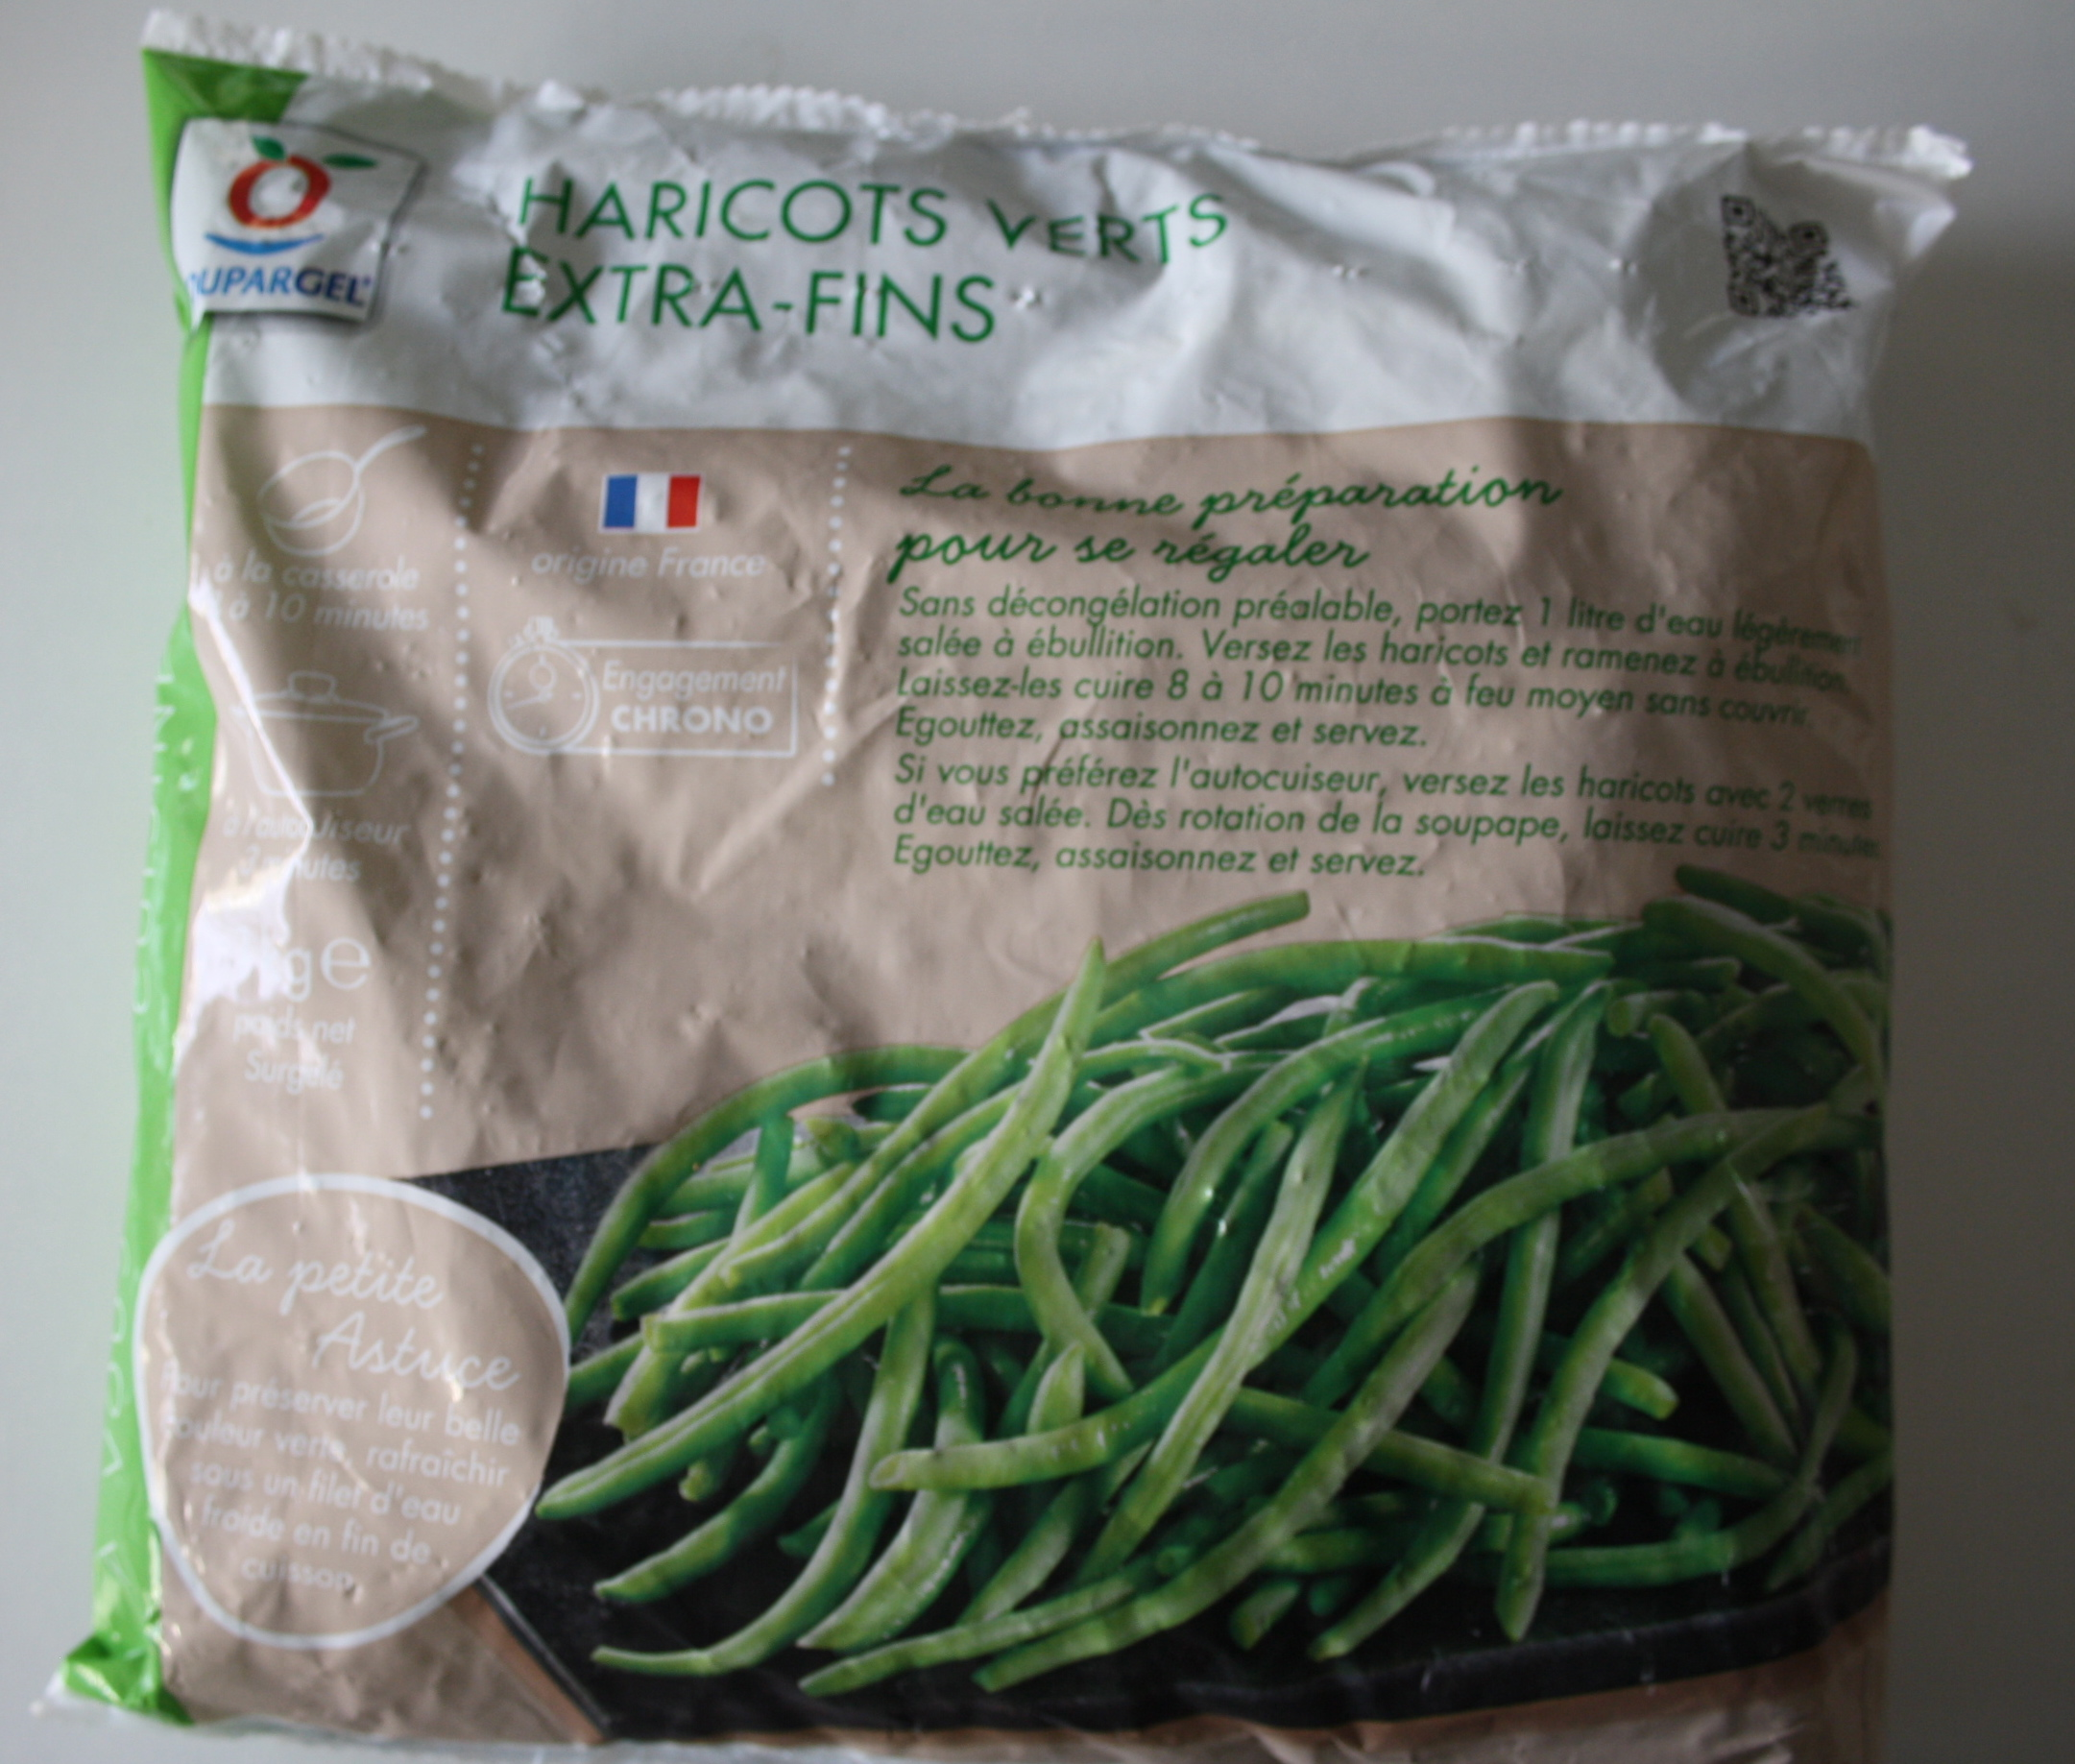 Haricots verts extra-fins - 3€ le kilo